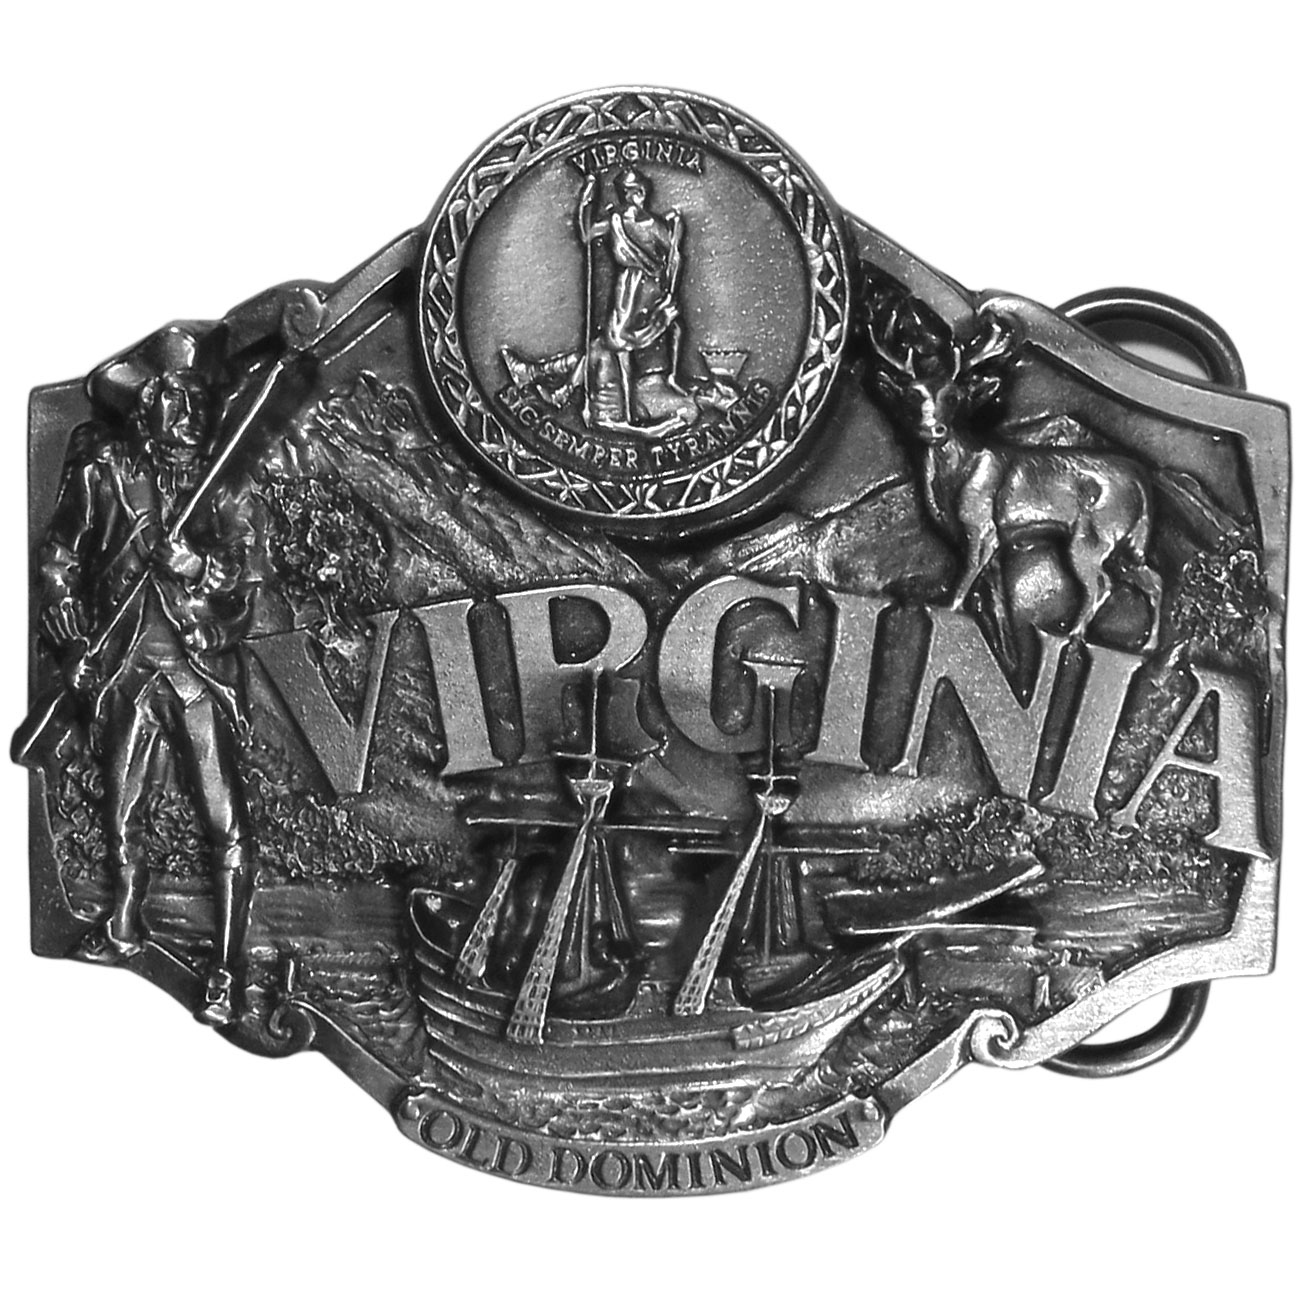 "Virginia Antiqued Belt Buckle - ""This belt buckle celebrates the state of Virginia!  """"Virginia"""" is written in bold across the center with the state seal above.  There is a Confederate soldier, an elk, mountains and water and an old time wooden ship with the words, """"Old Dominion"""" on the bottom, which refers to one of the best known nicknames for Virginia.  On the back are the words, """"Virginia became the 10th state on June 25, 1788.  The state tree is the flowering Dogwood and the state bird is the Cardinal.""""  This exquisitely carved buckle is made of fully cast metal with a standard bale that fits up to 2"""" belts."""